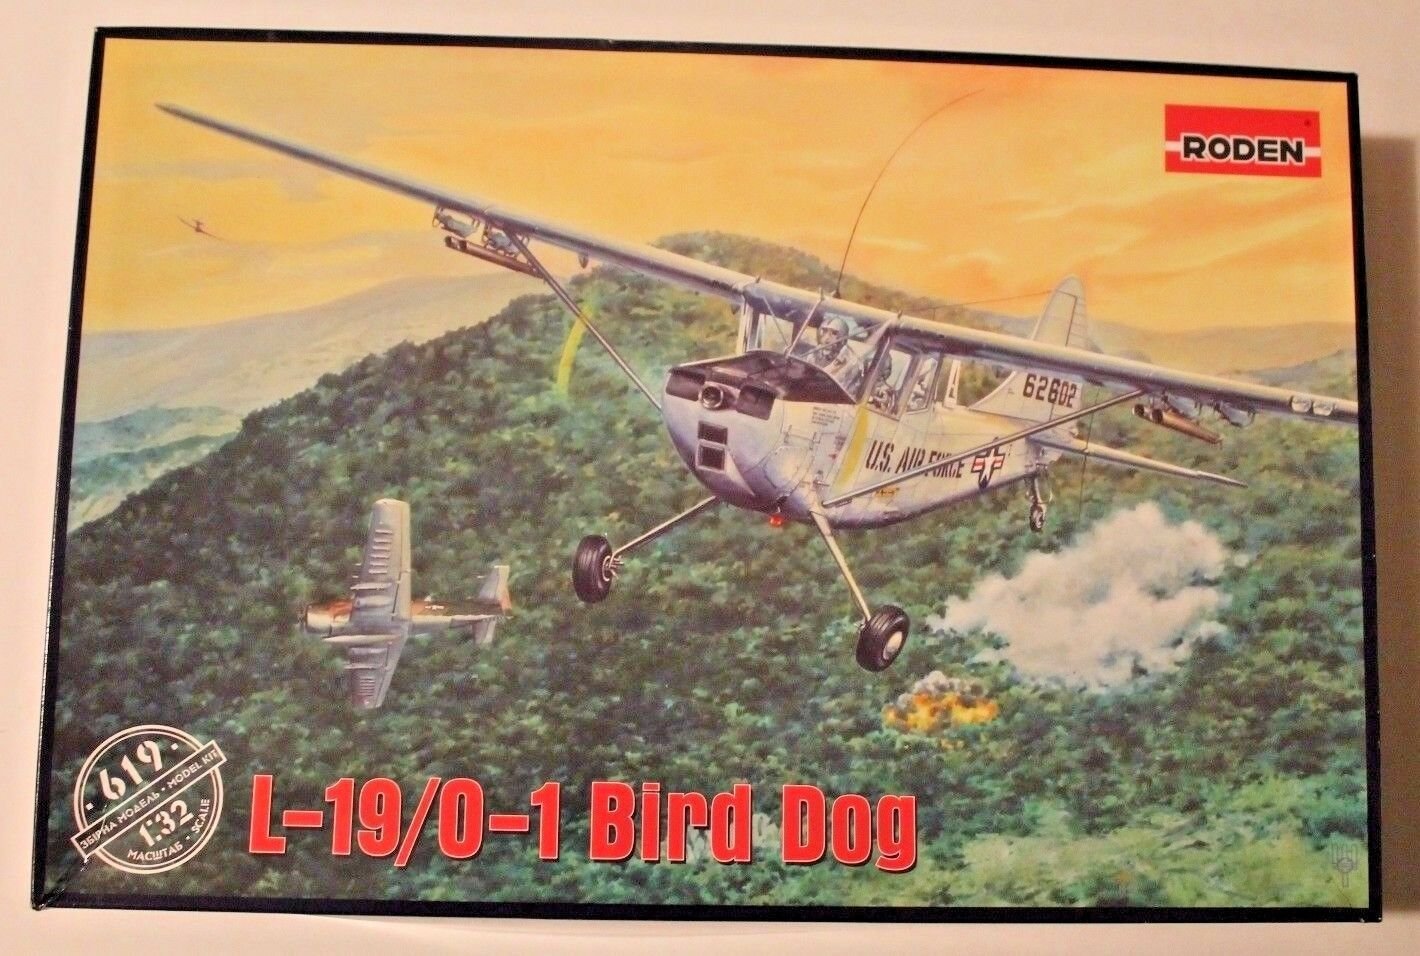 NEW, Roden L-19 O-1 Bird Dog in 1 32 619 ST